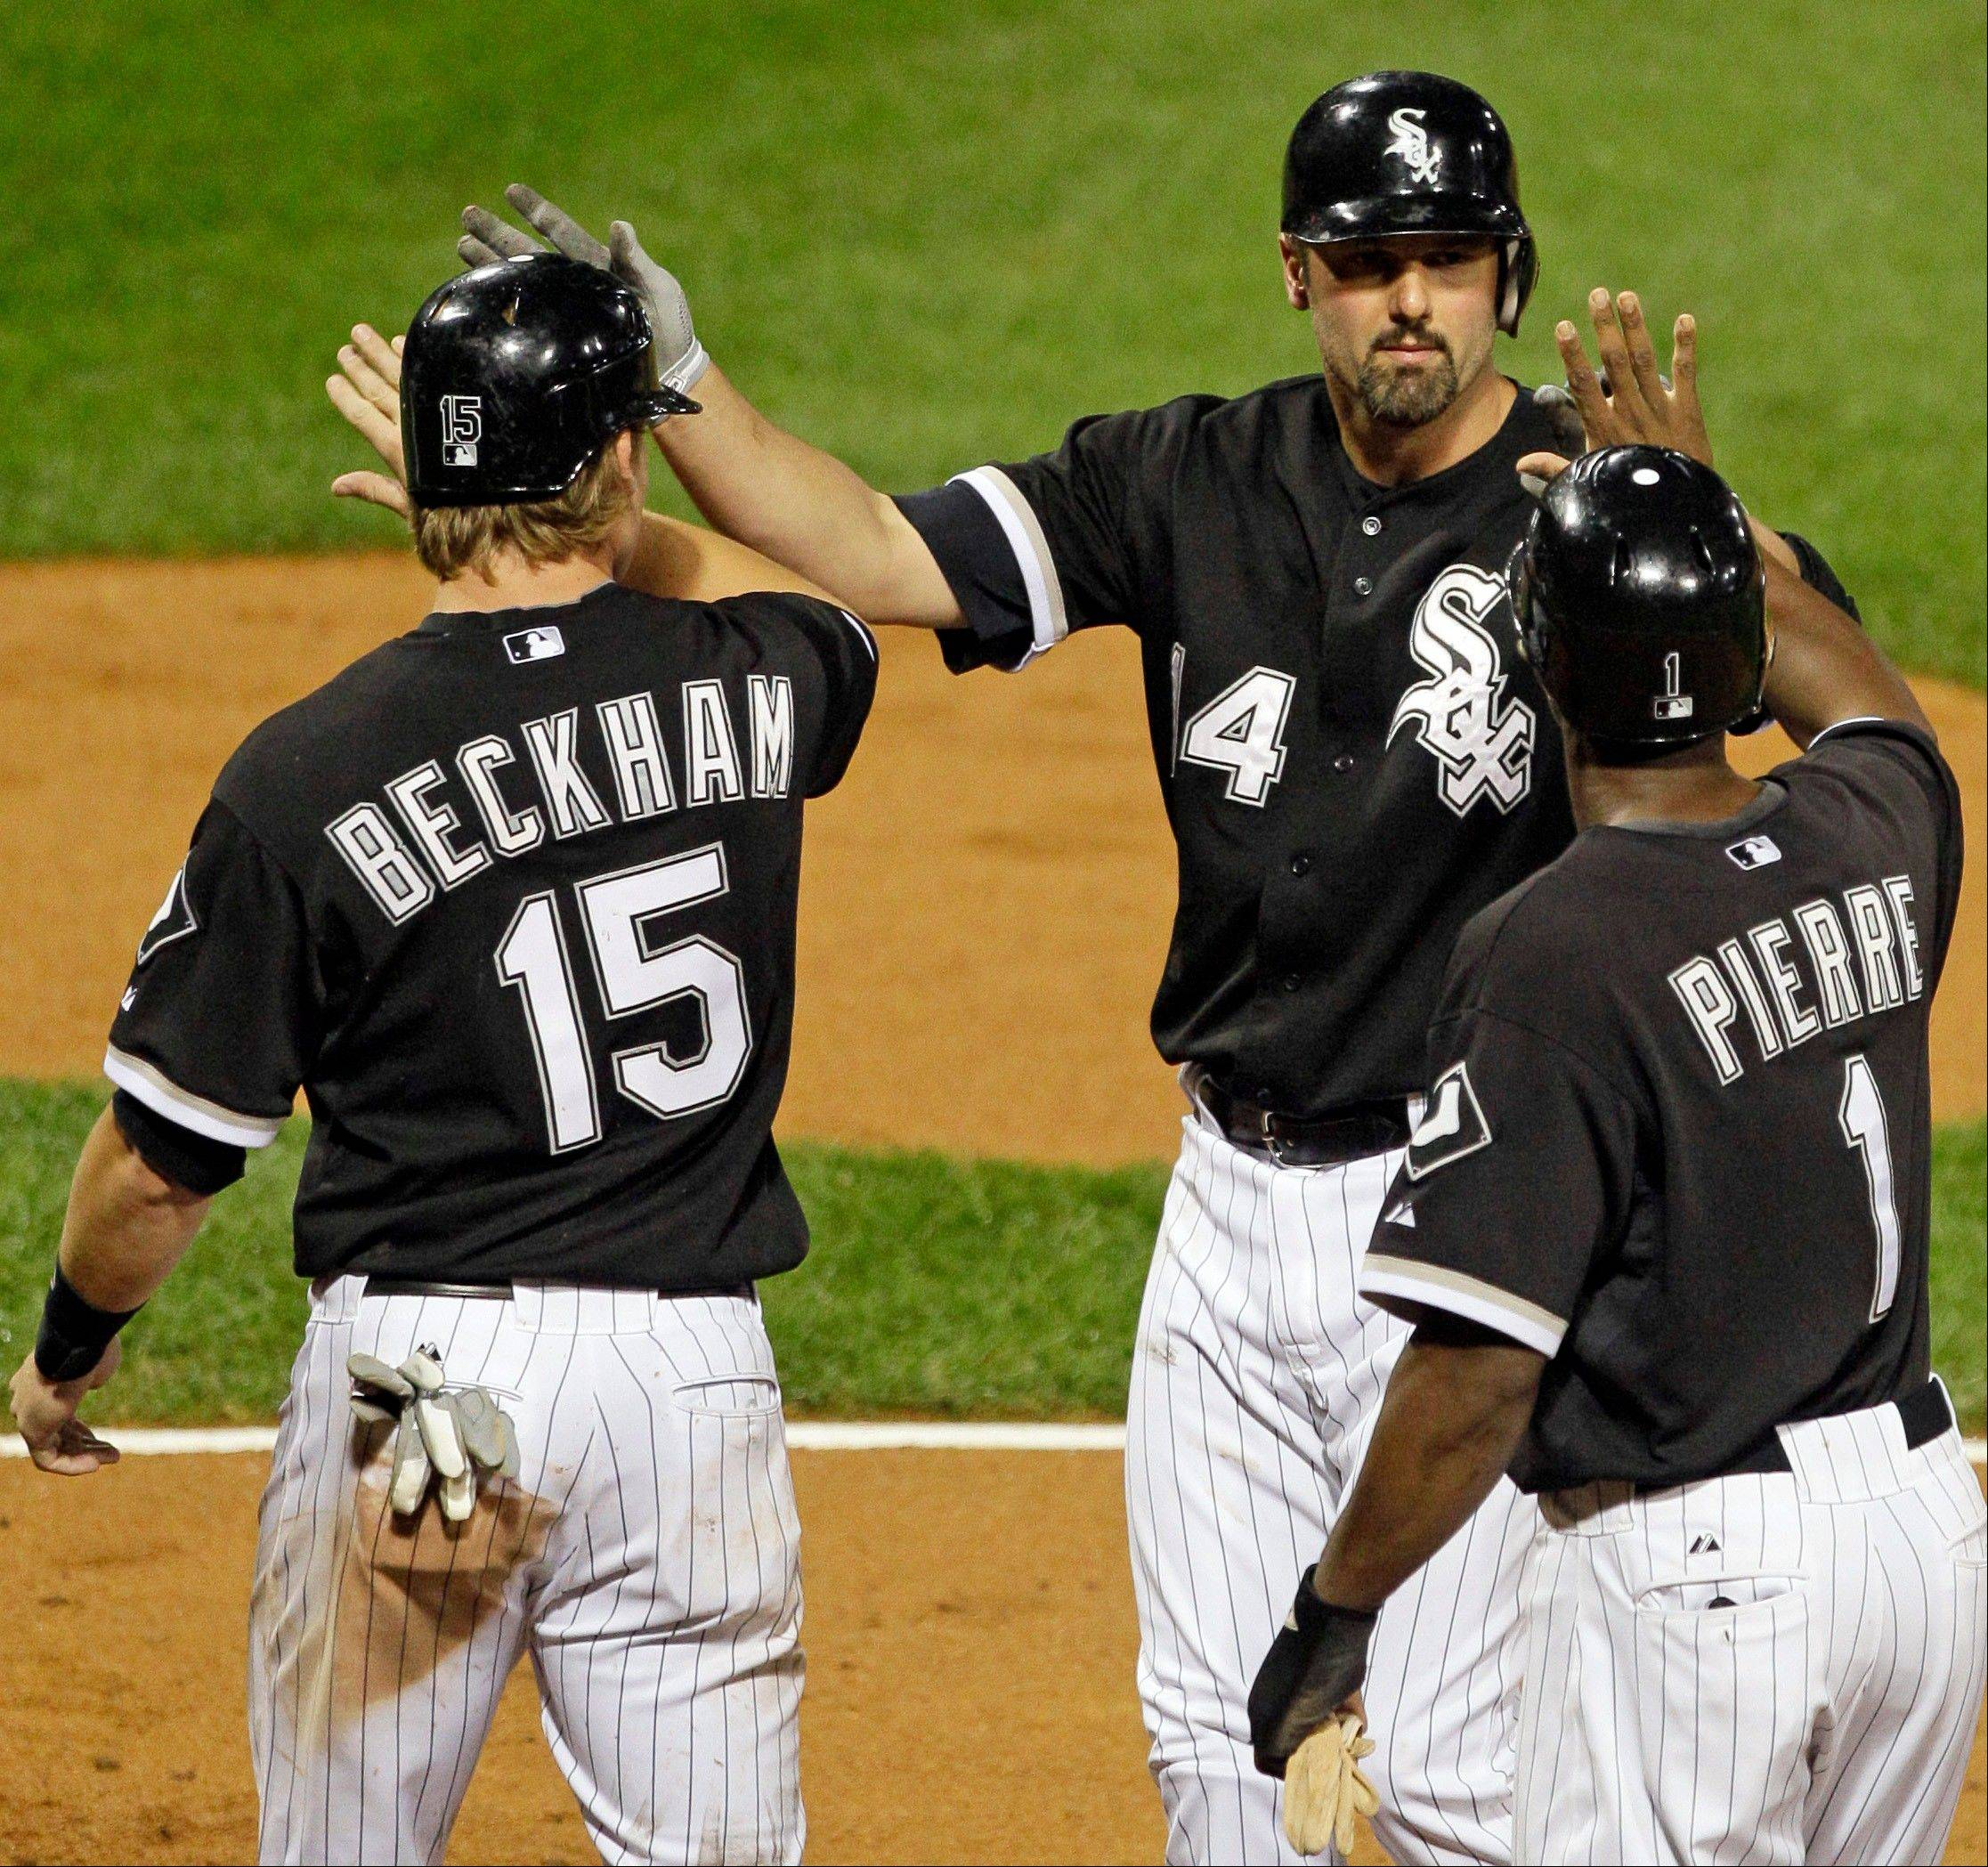 Paul Konerko, center, celebrates with Gordon Beckham and Juan Pierre after hitting a grand slam during the seventh inning.